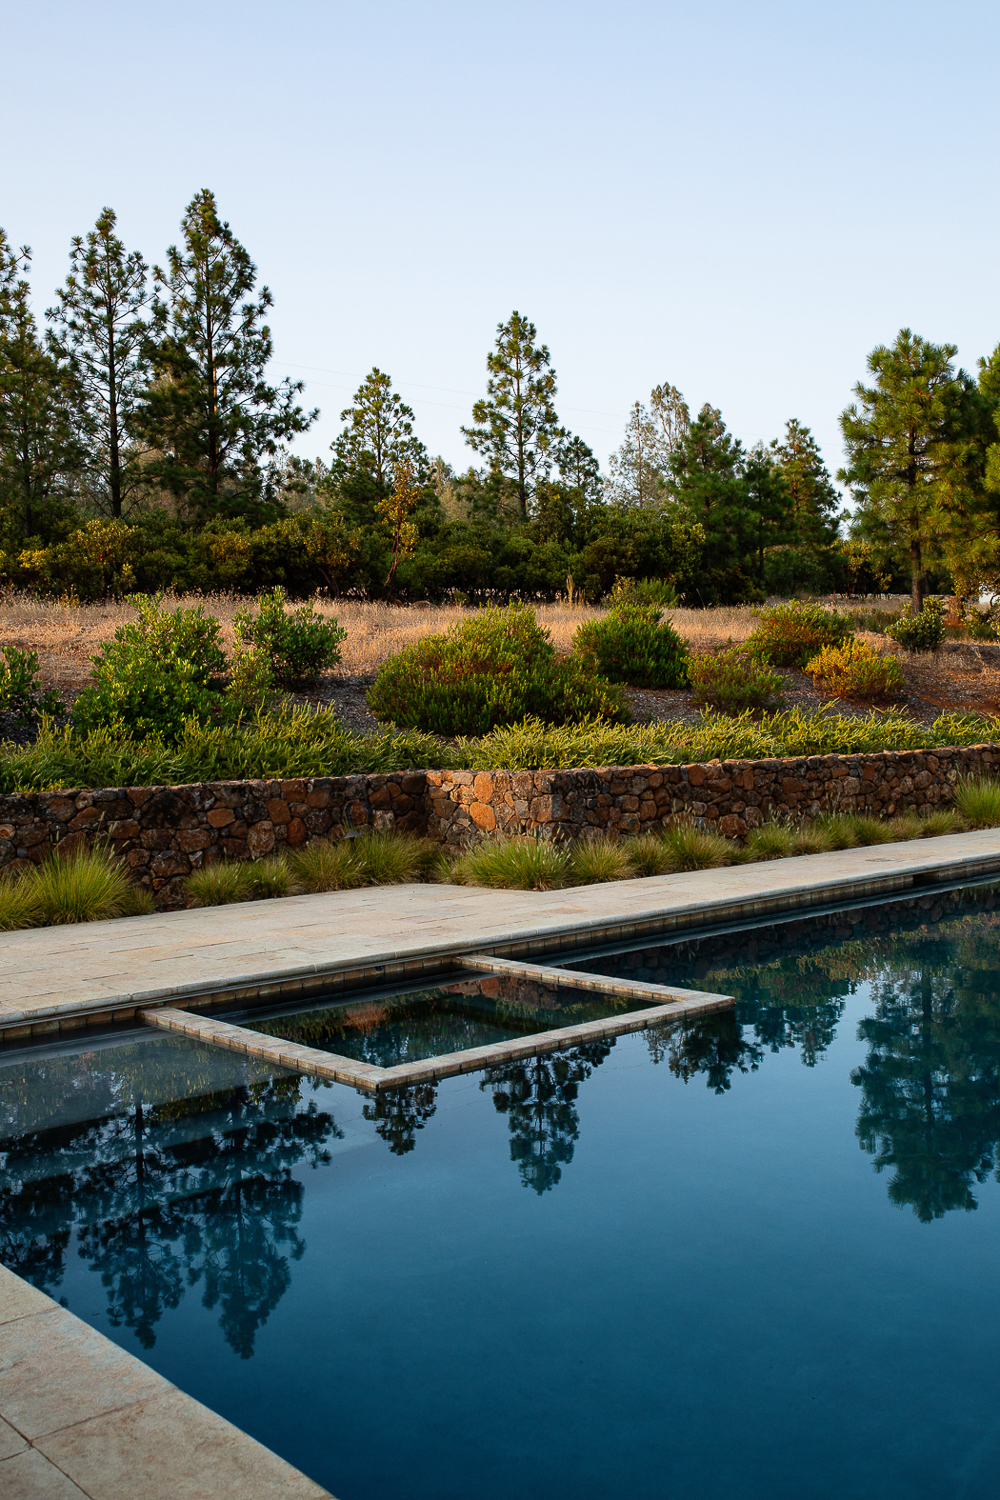 Pool with hot tub spa by Sonoma / Napa architecture photographers.